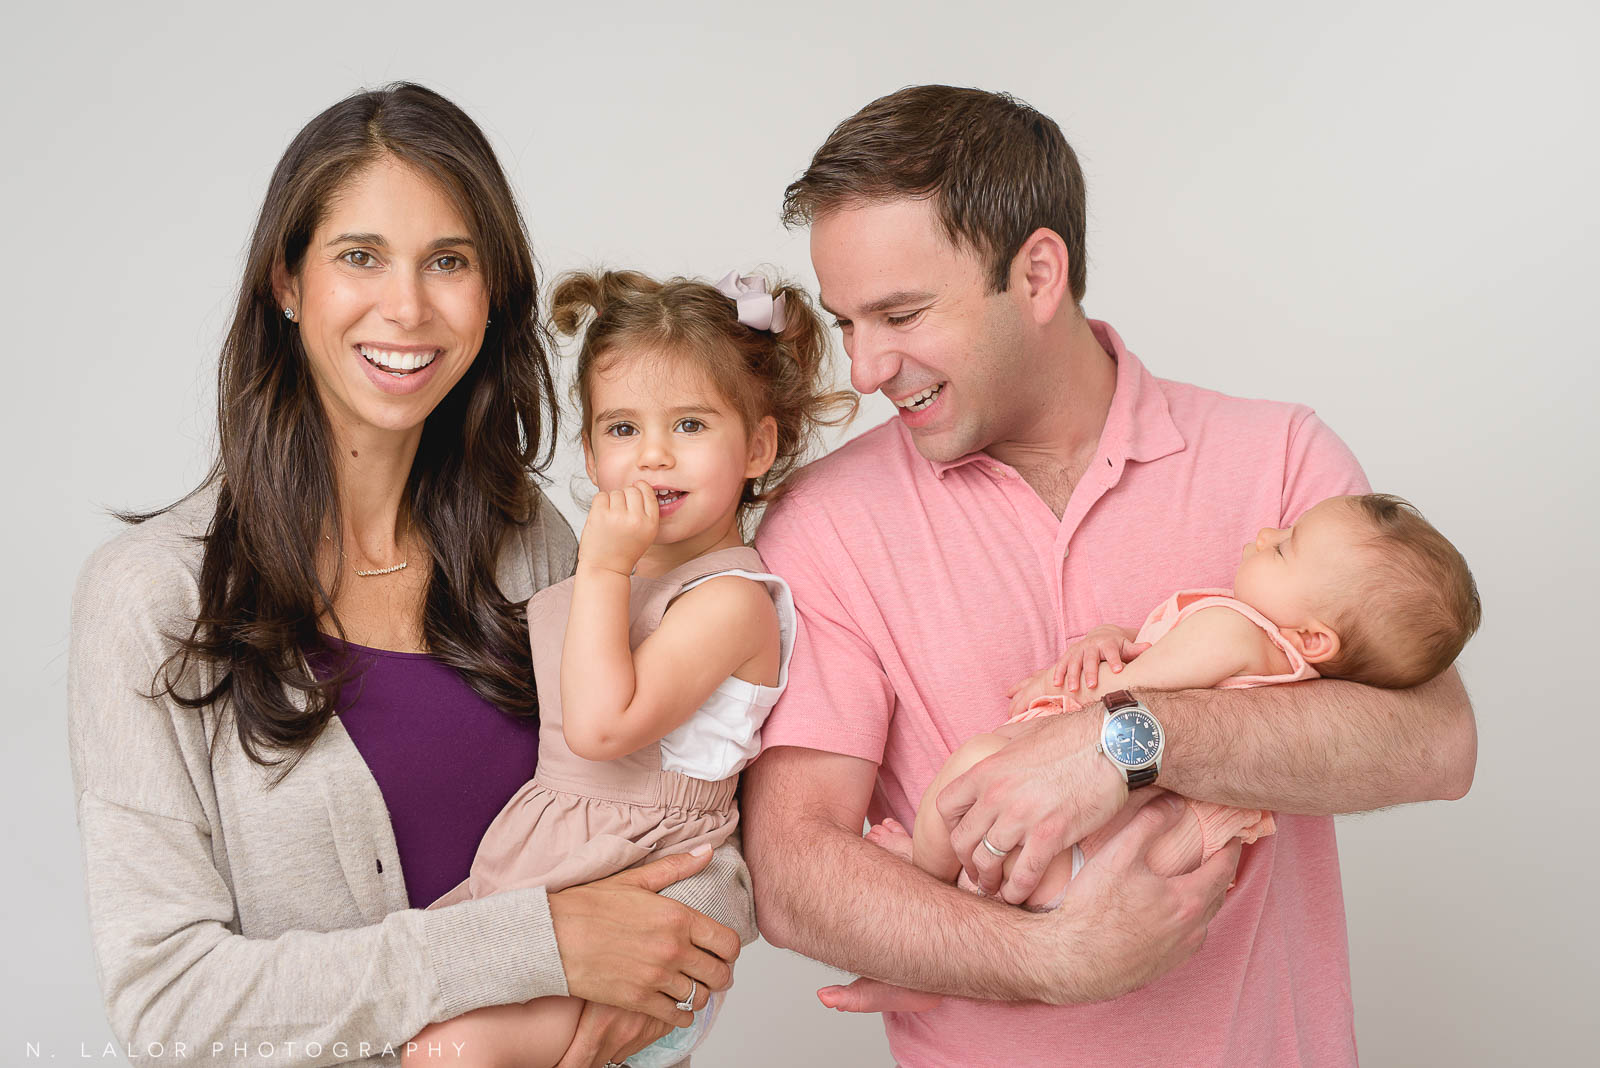 Natural-looking family portrait of a couple and their two young children, a couple baby and a toddler. Photo by N. Lalor Photography. Studio in Greenwich, Connecticut.